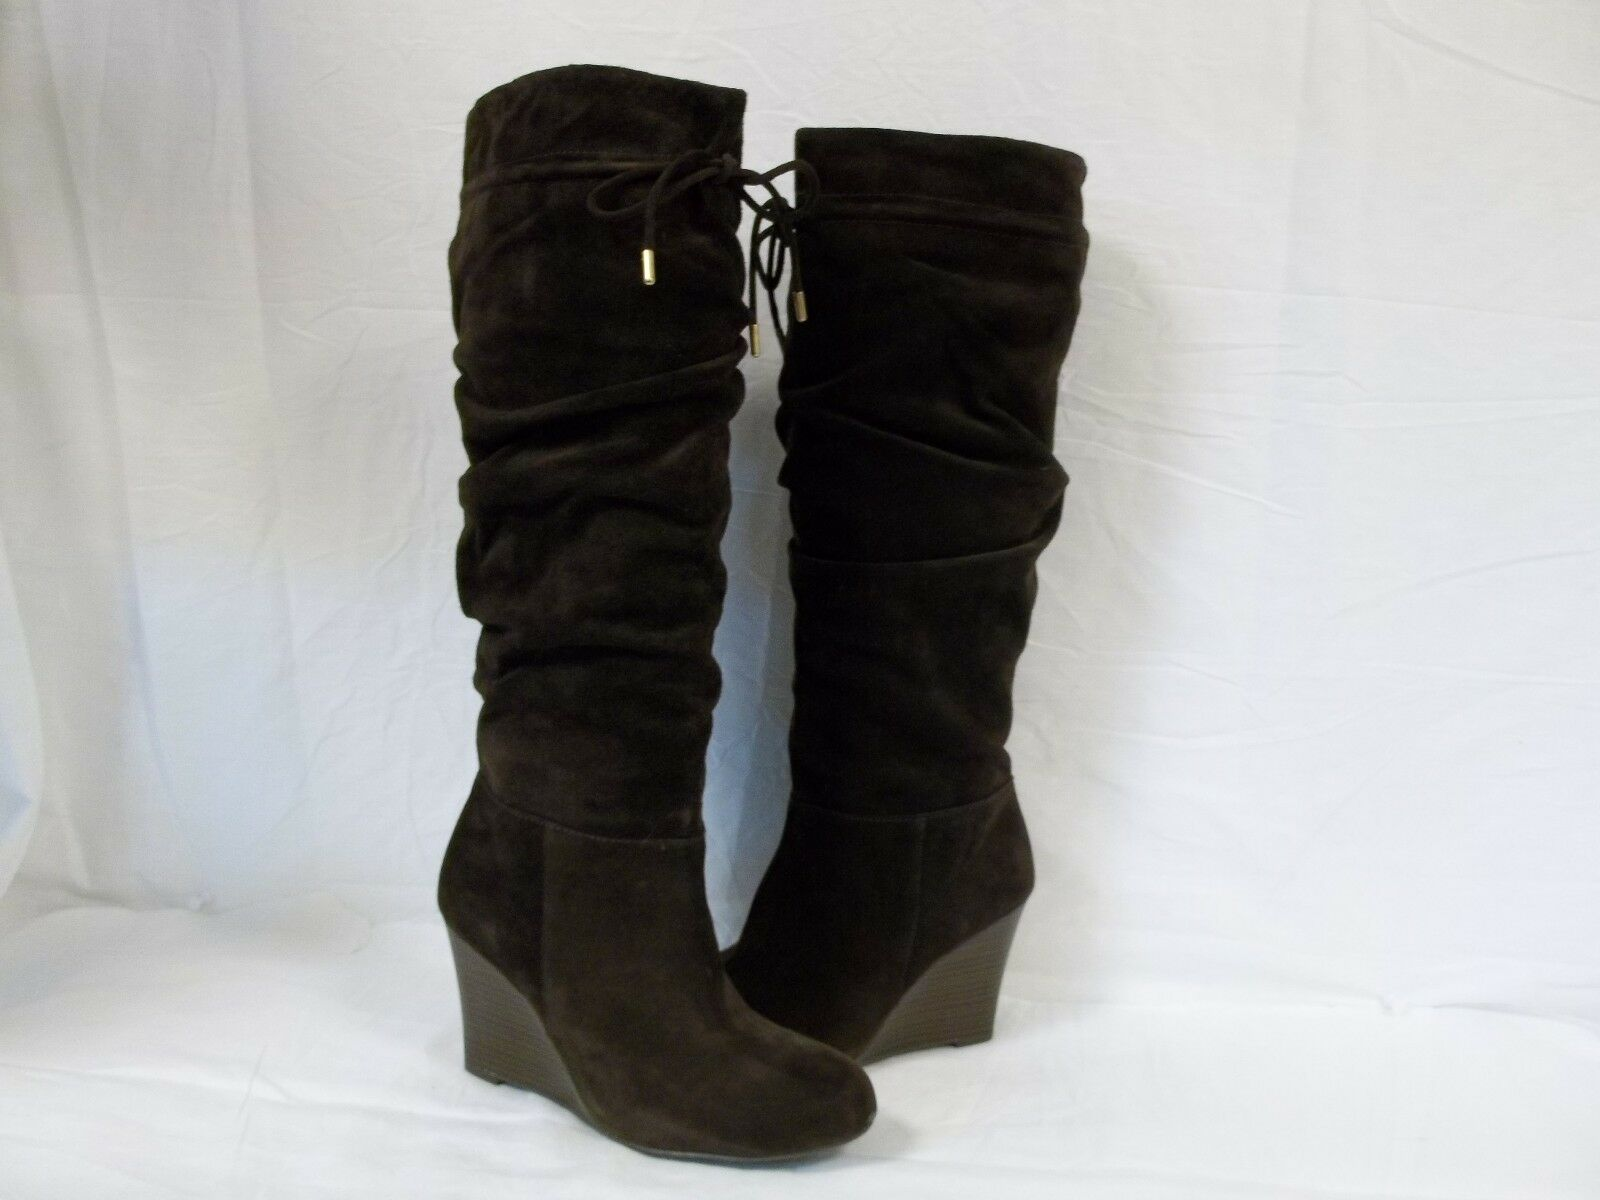 International Concepts Sz 8 M Maia Dark Braun Leder Knee High Stiefel NEU Damenschuhe